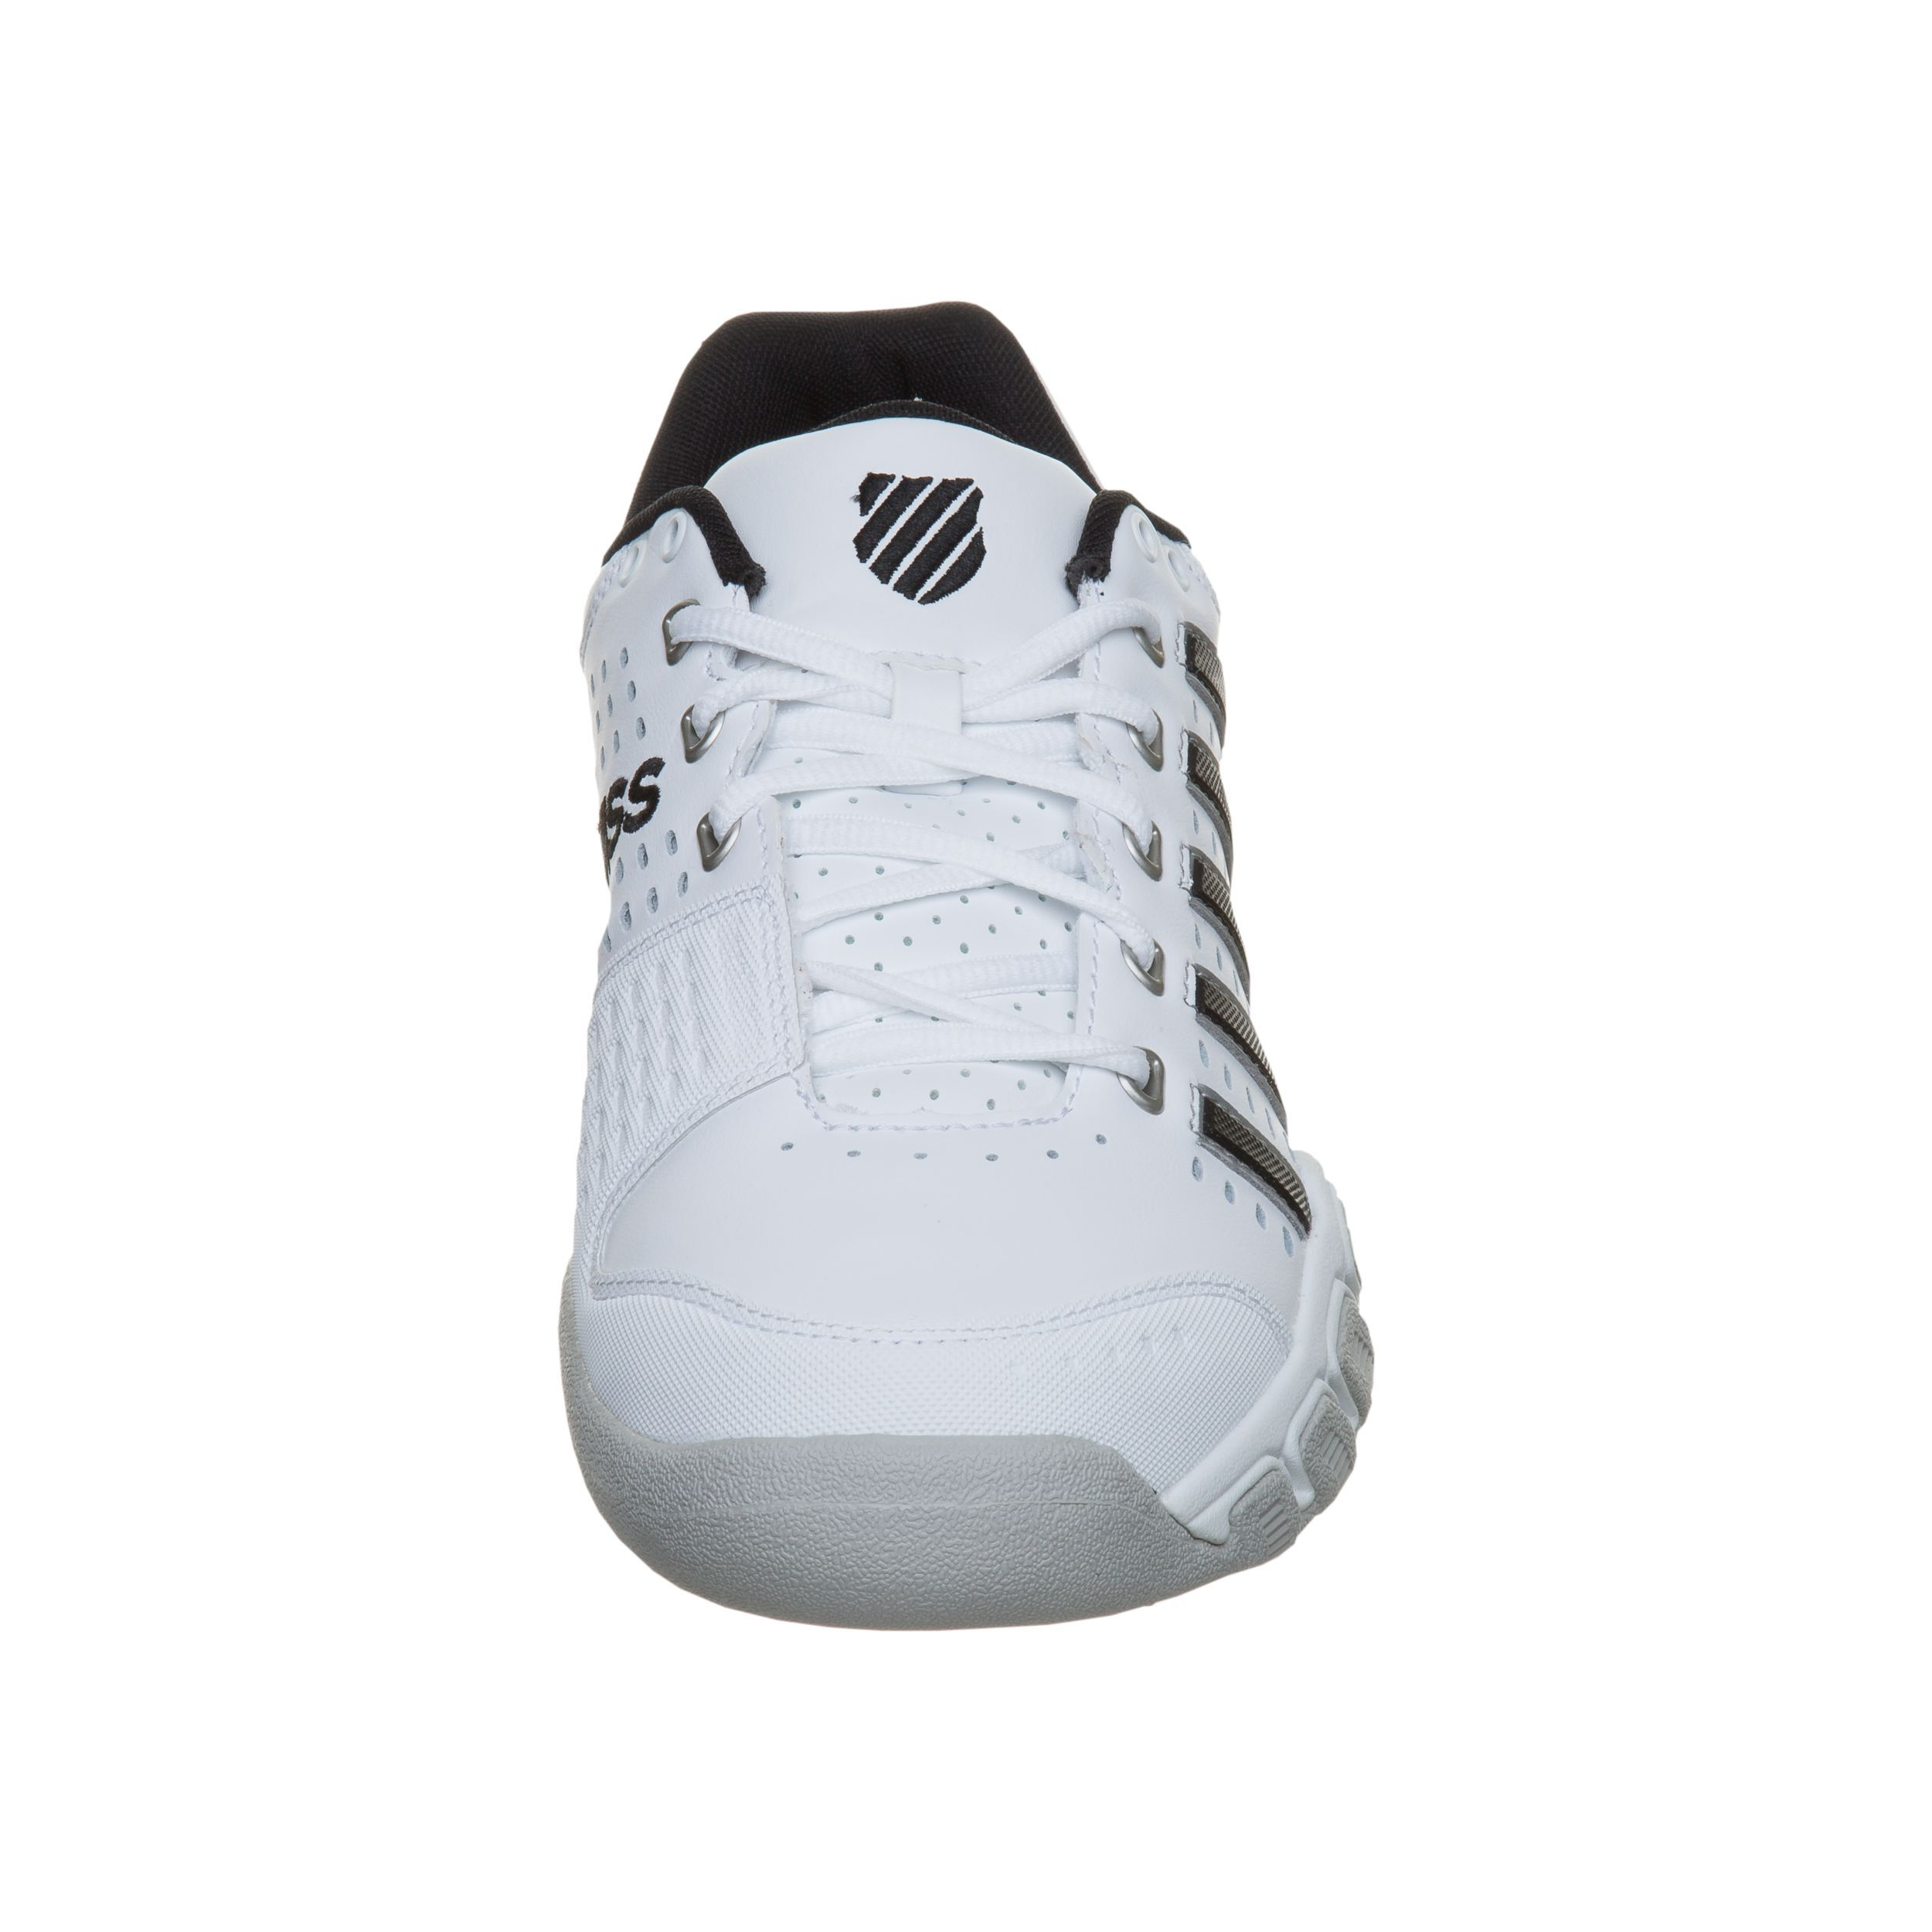 K Swiss Big Shot Light LTR Teppichschuh Herren Weiß